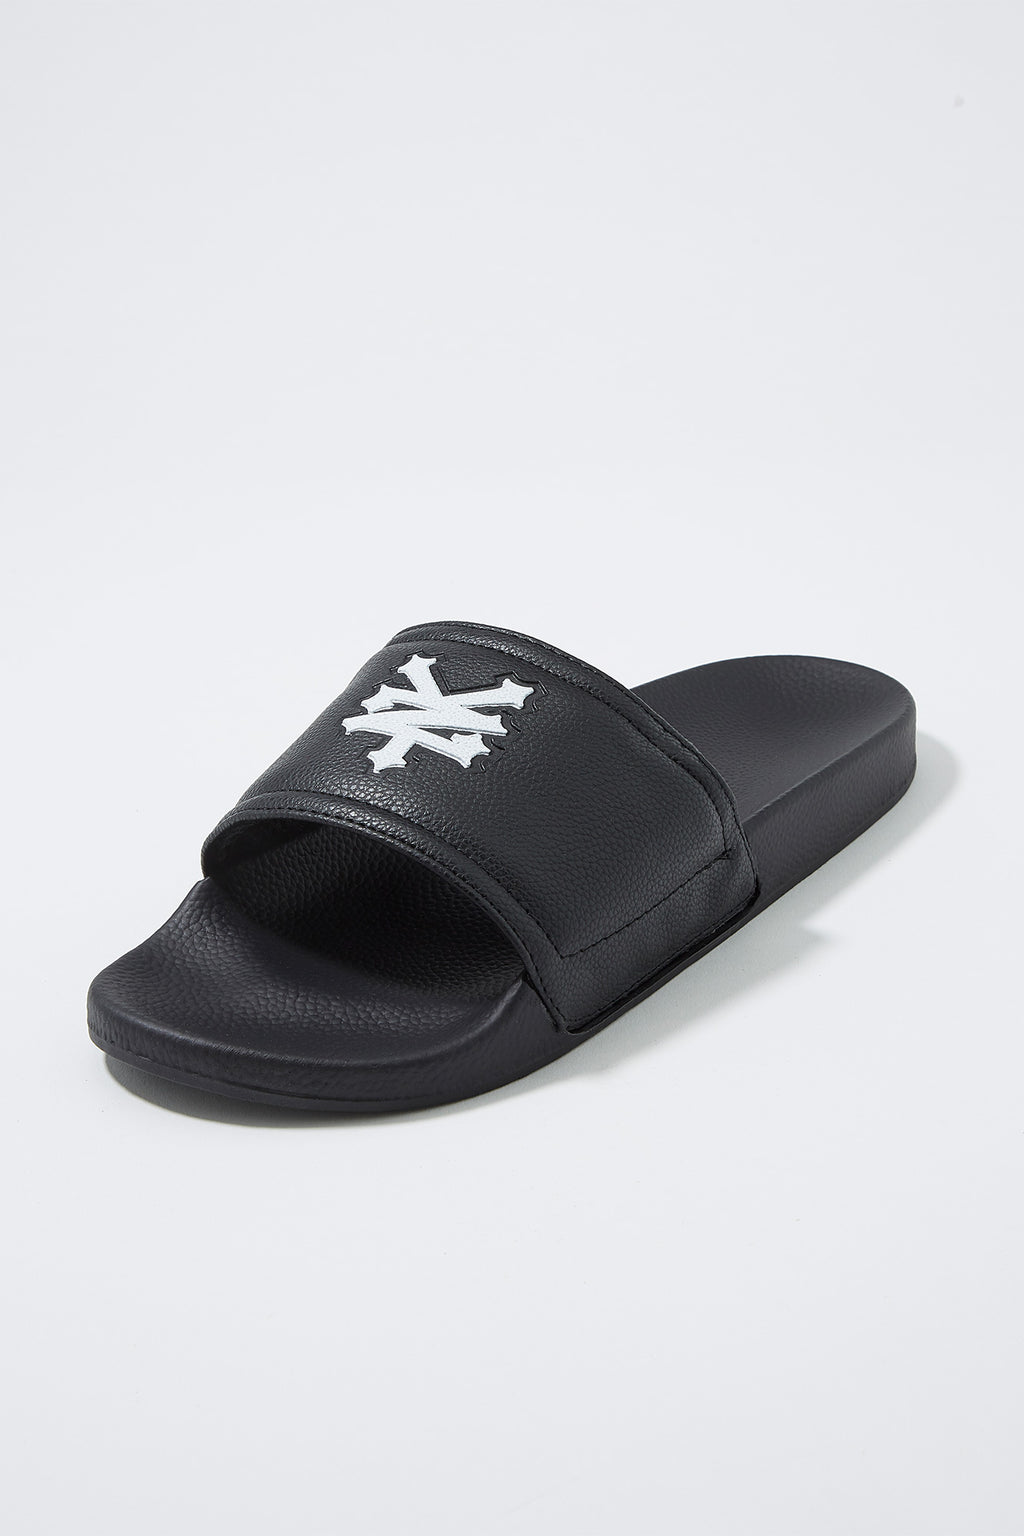 Zoo York Mens Slide Sandals